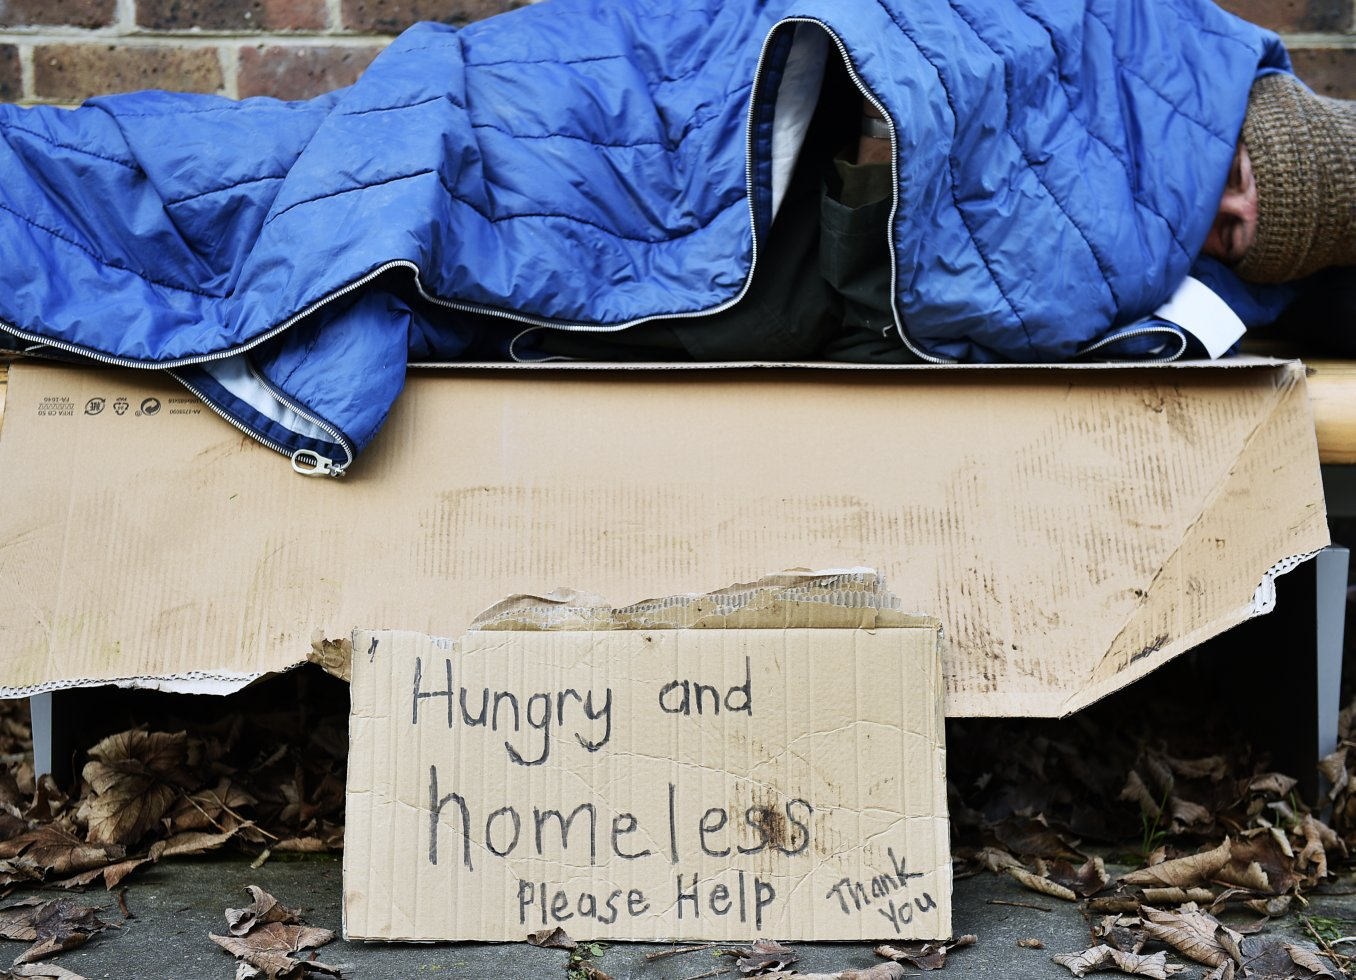 Why do people become homeless?